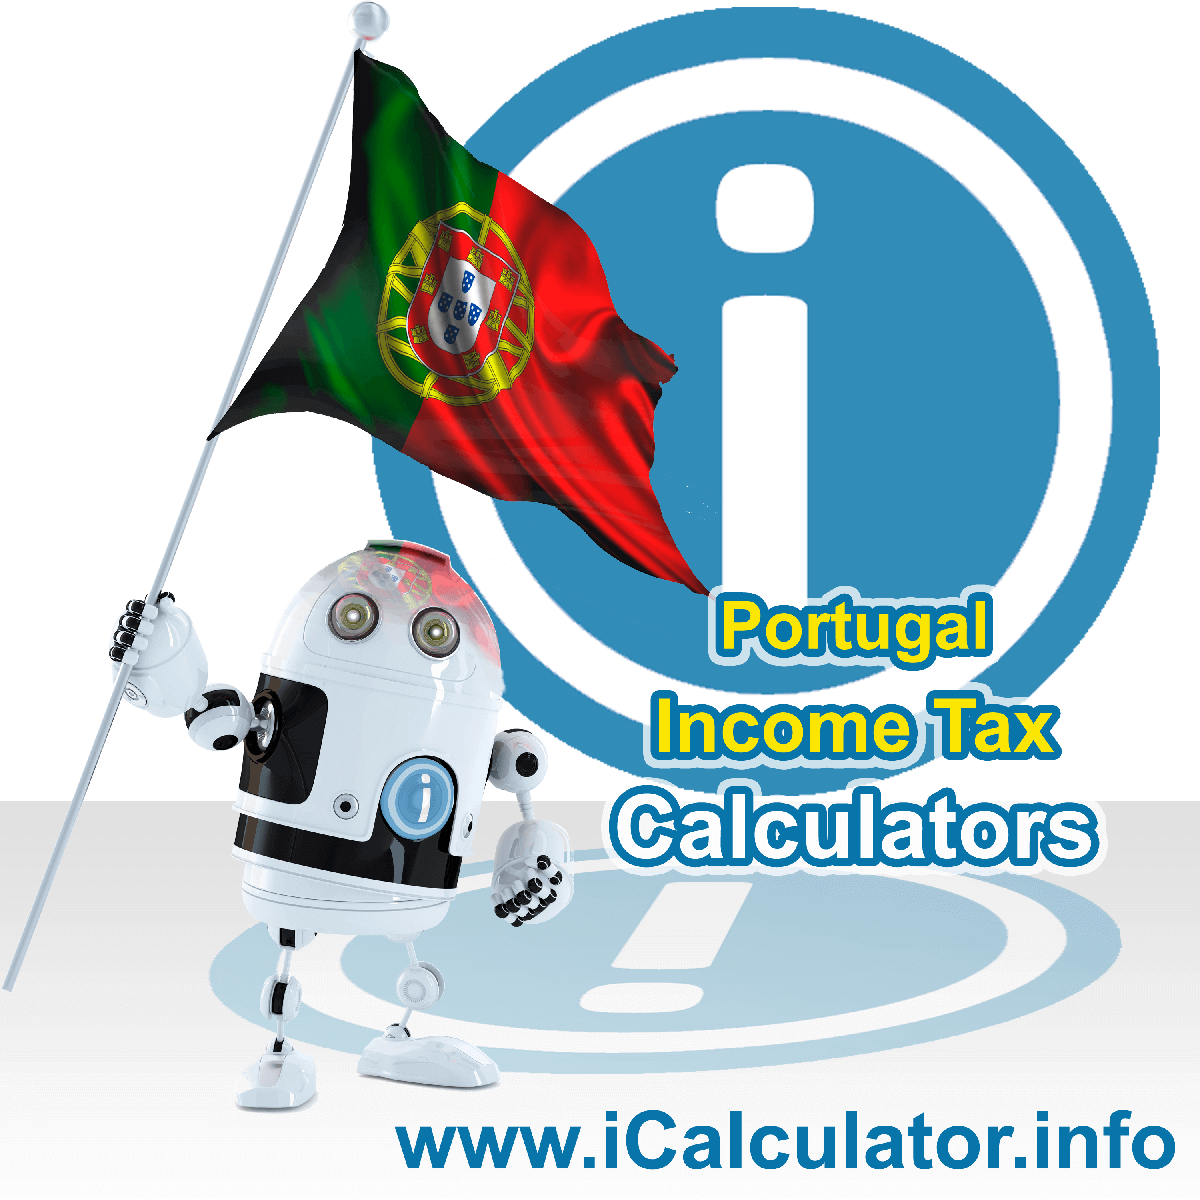 Portugal Income Tax Calculator. This image shows a new employer in Portugal calculating the annual payroll costs based on multiple payroll payments in one year in Portugal using the Portugal income tax calculator to understand their payroll costs in Portugal in 2021